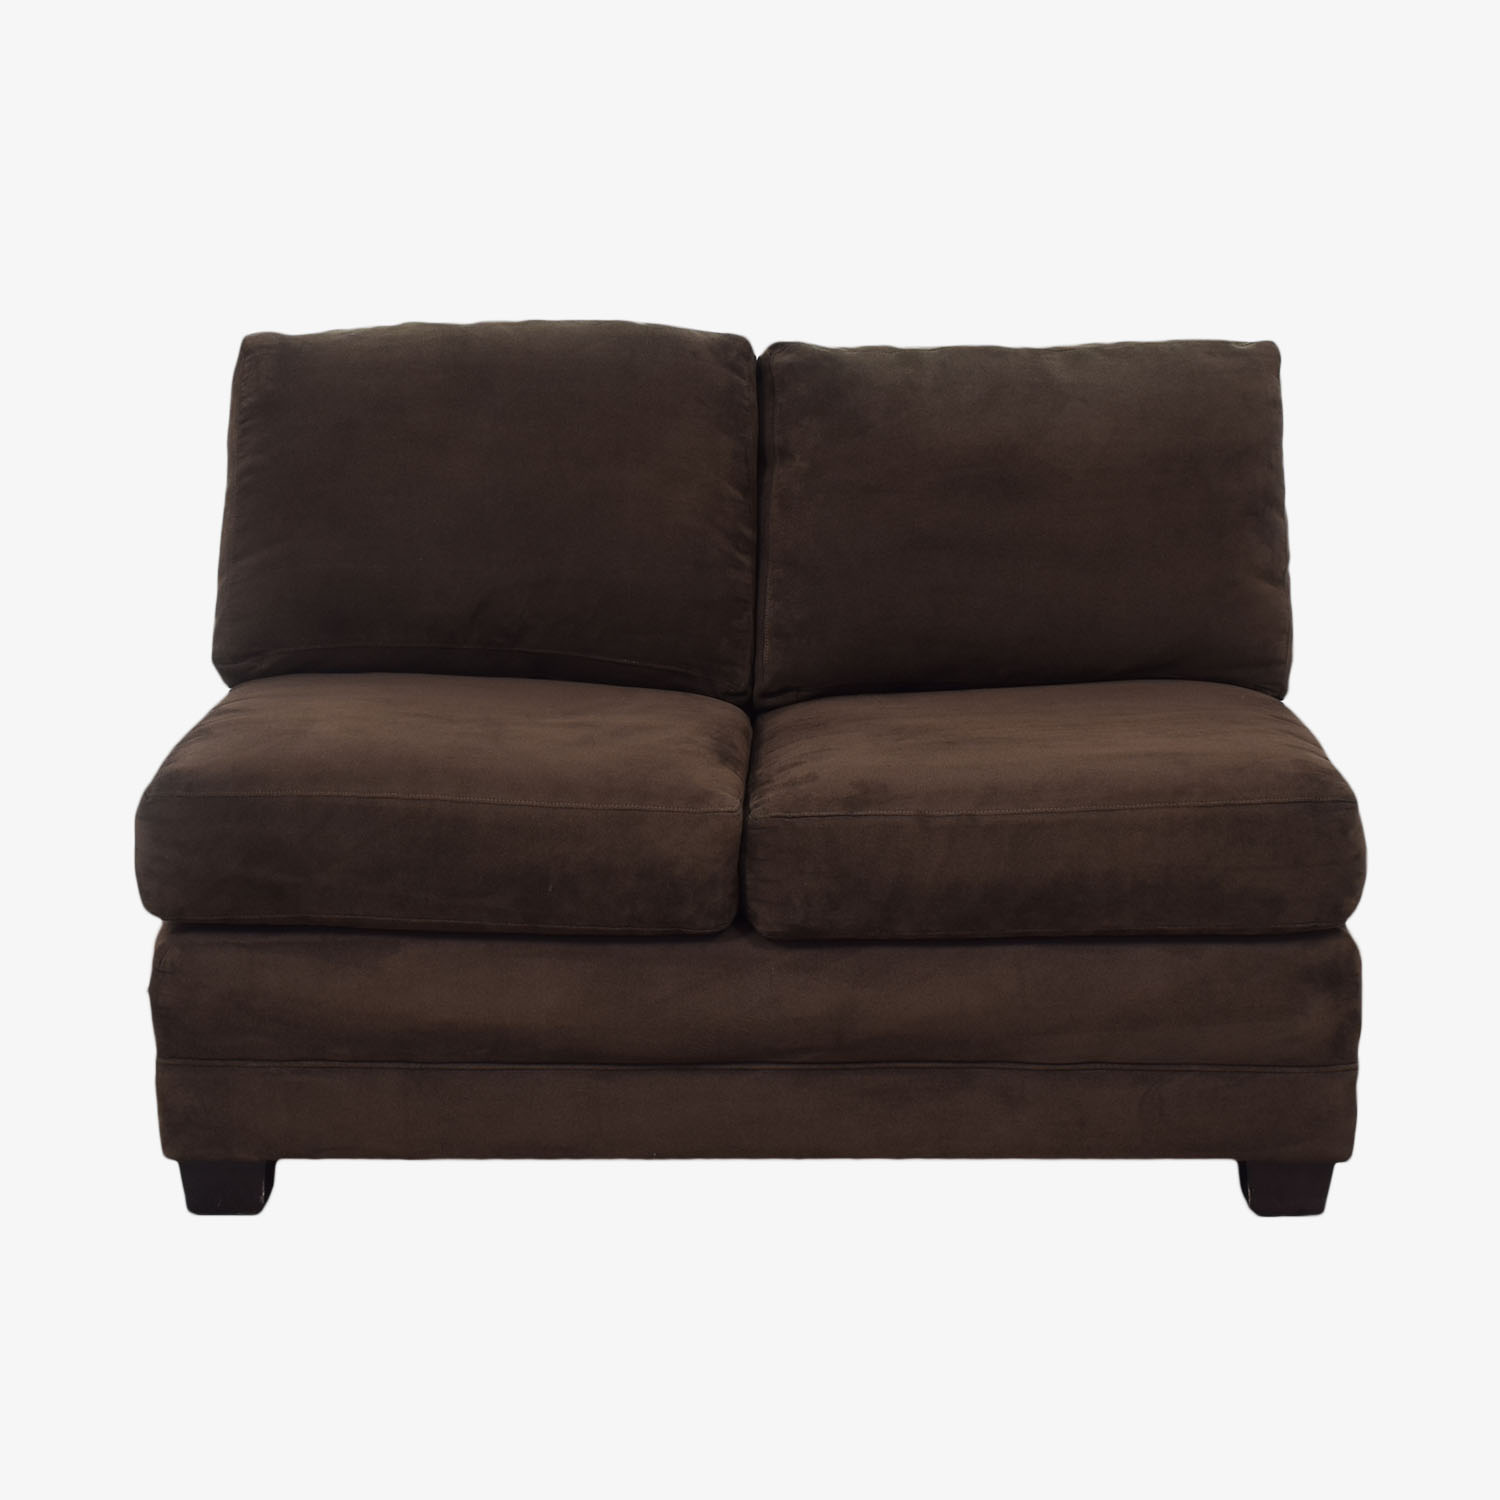 Crate & Barrel Crate & Barrel Axis II Armless Loveseat dimensions